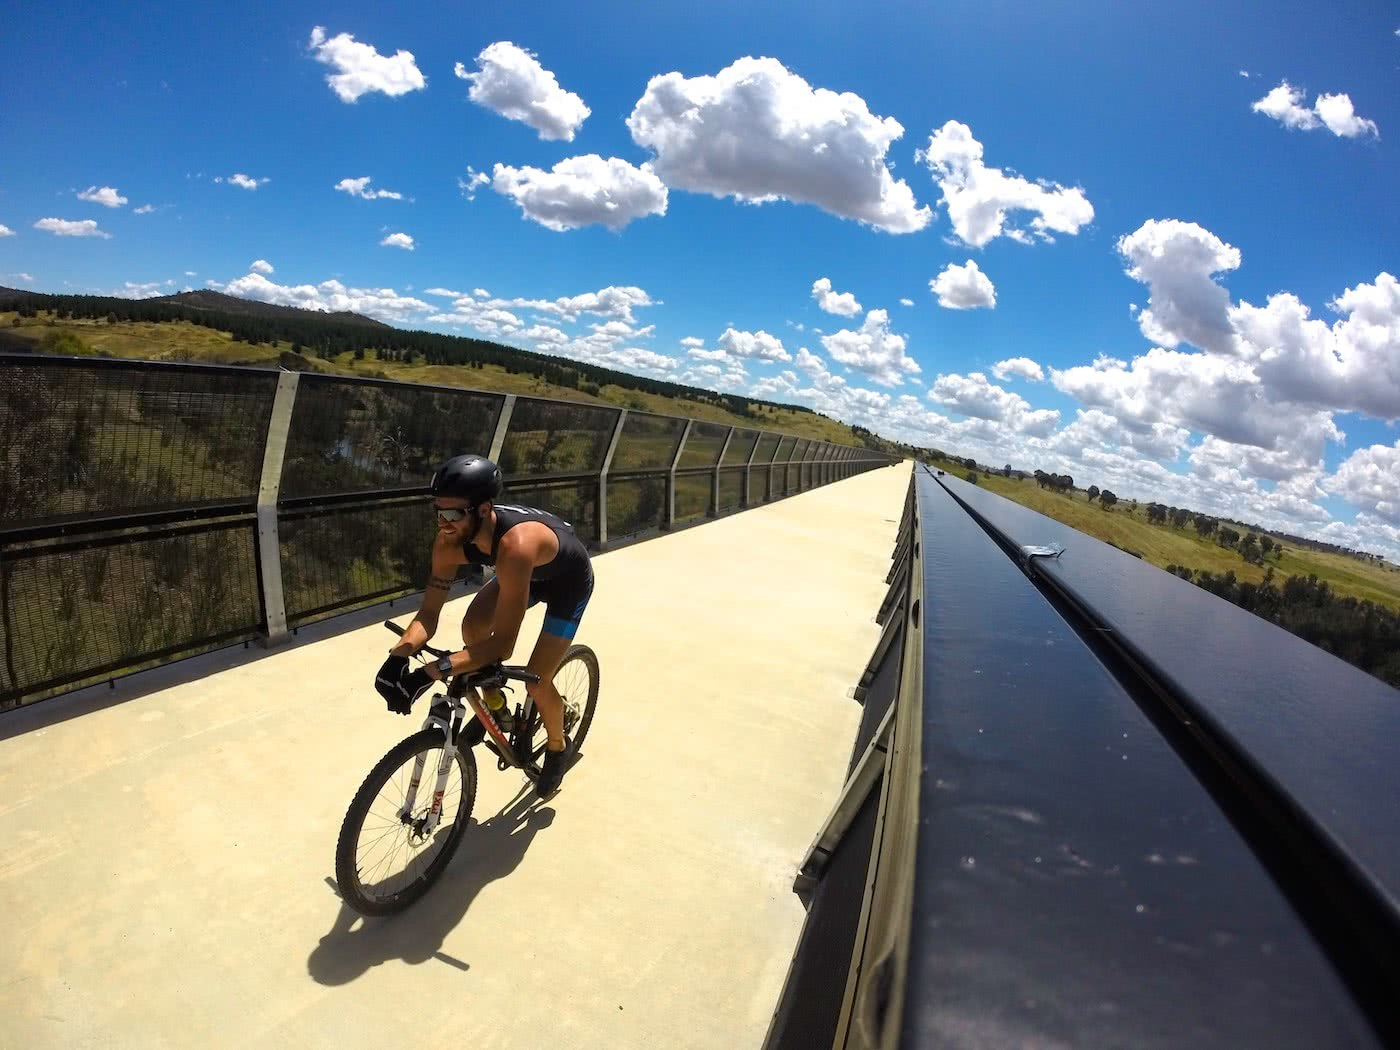 What's It Like To Compete In An Adventure Triathlon?, Rowan Beggs-French, canberra, Australian capital territory, trail running month, cycling